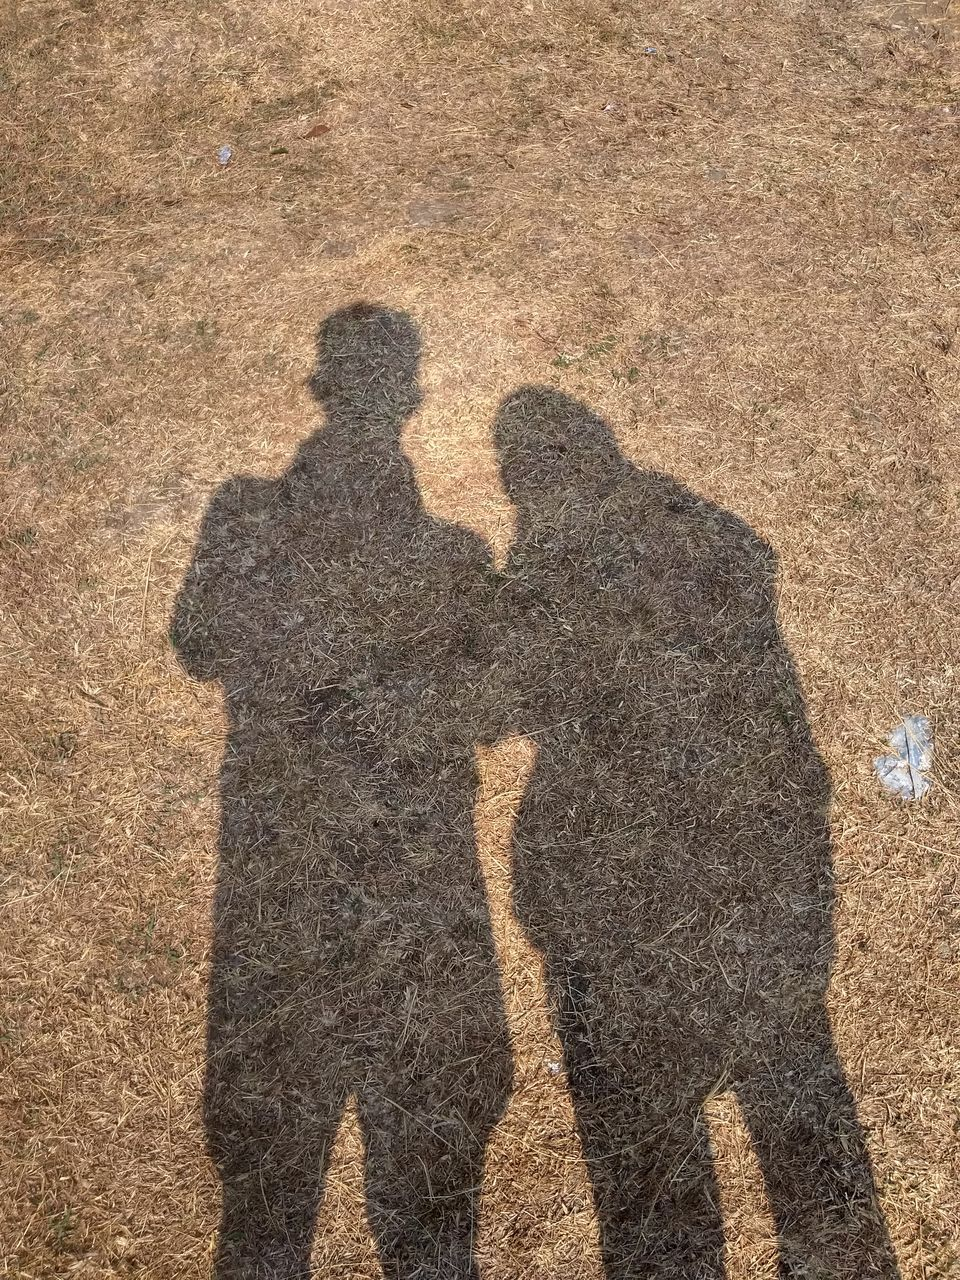 SHADOW OF MAN AND WOMAN ON ROAD